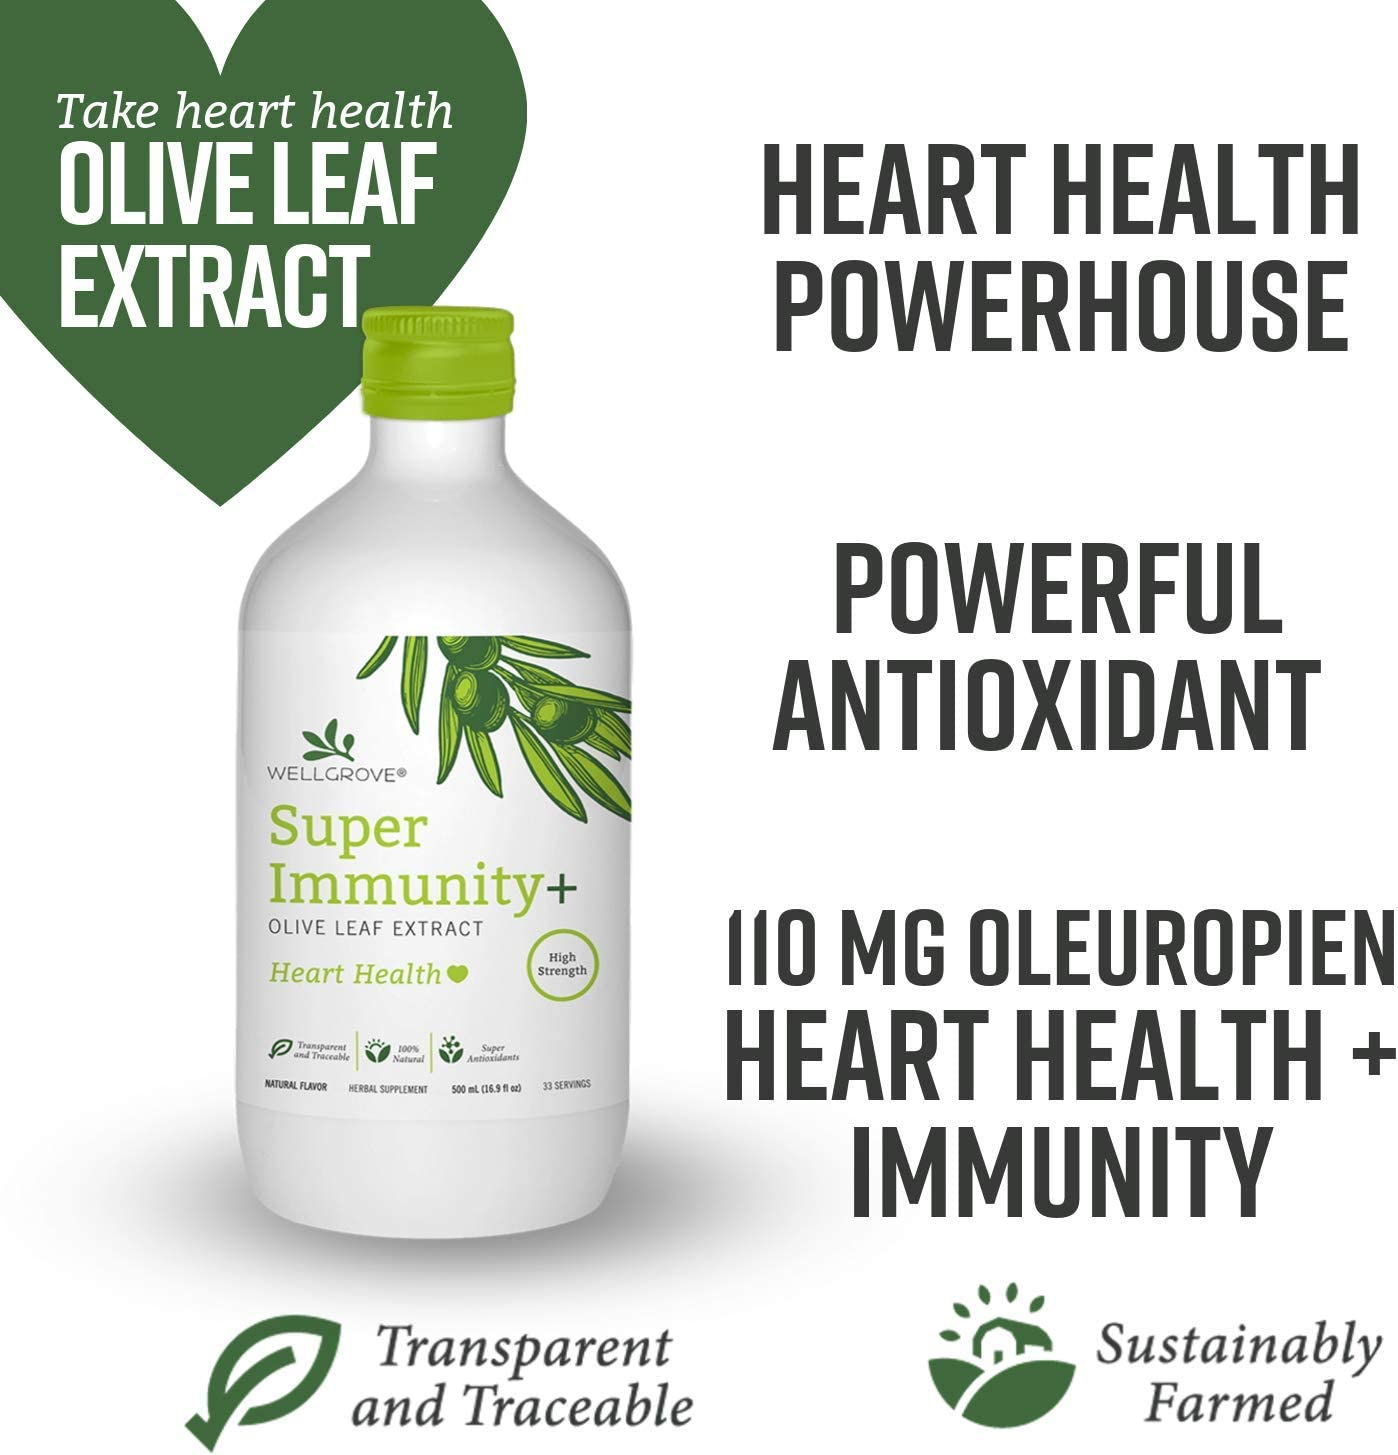 WellGrove Super Immunity Olive Leaf Extract with Heart Health All Natural Vegan Antioxidant Dietary Supplement Promotes Immunity and Cardiovascular Health Organic Non-GMO Natural 500mL